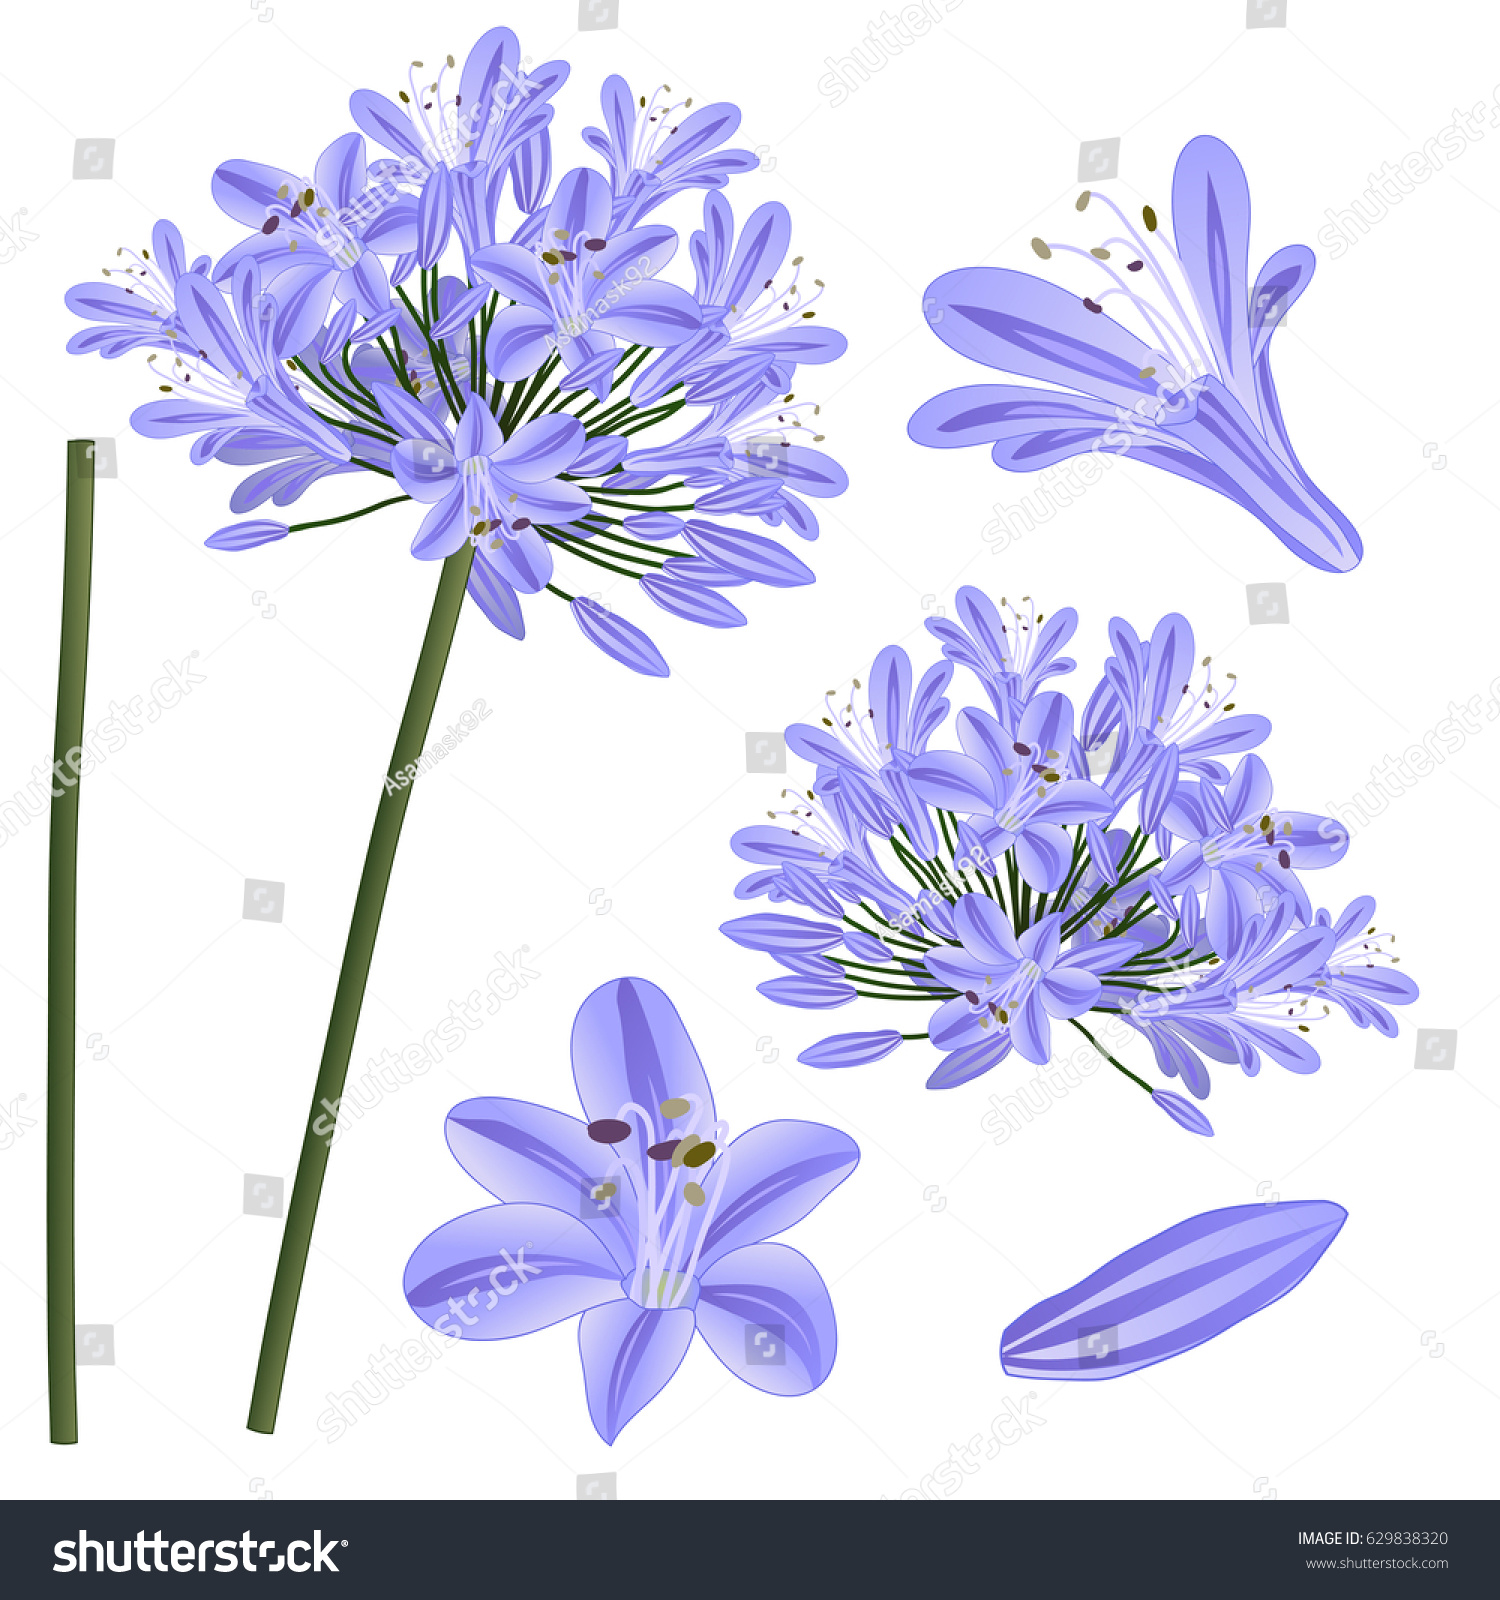 Blue purple agapanthus lily nile african stock vector 629838320 blue purple agapanthus lily of the nile african lily vector illustration isolated izmirmasajfo